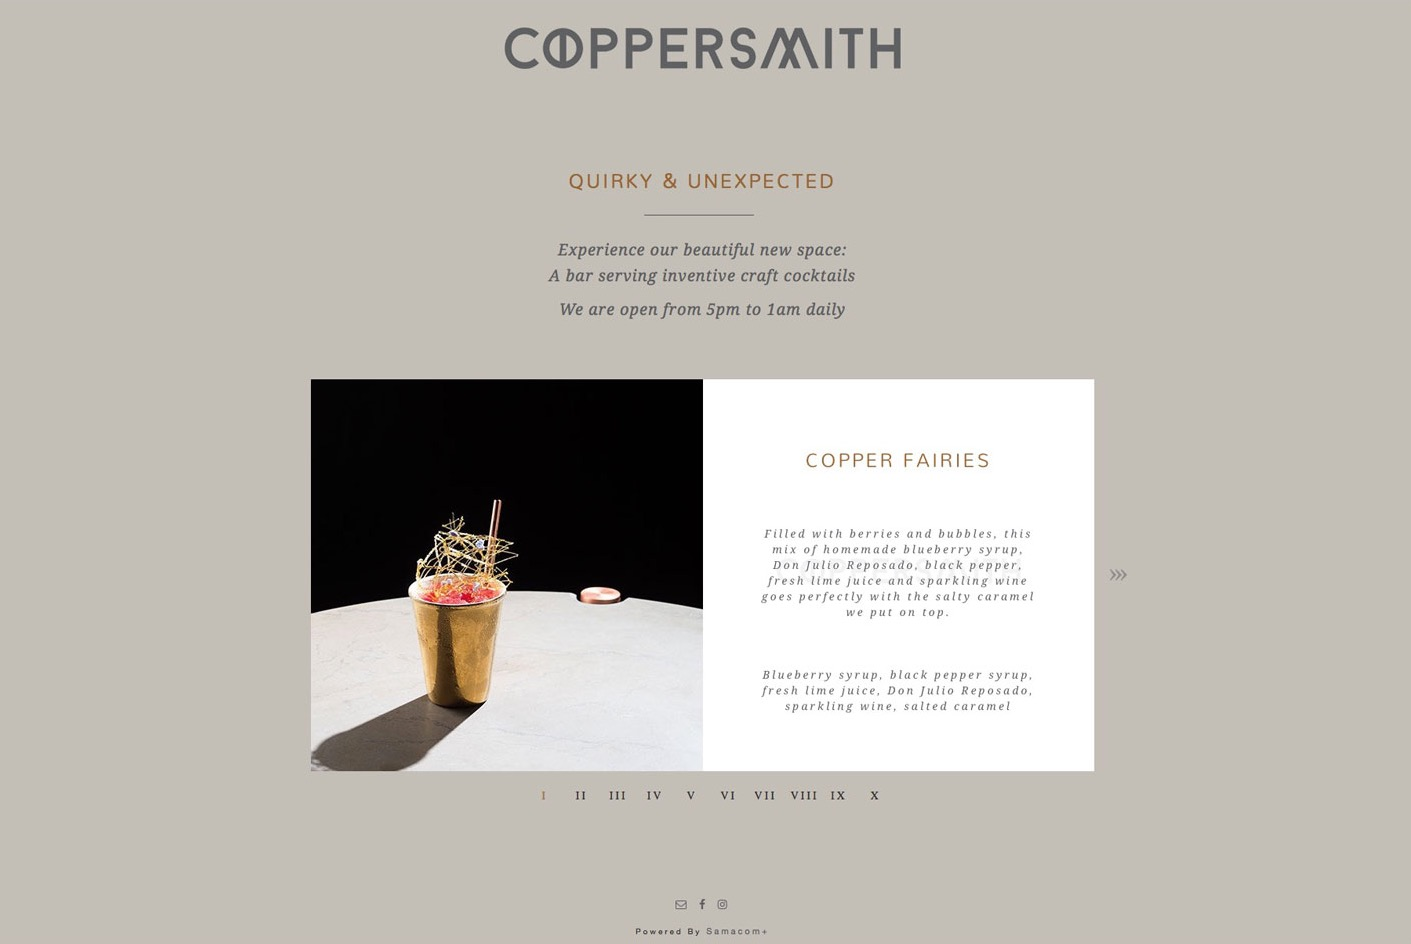 coppersmith1_edited